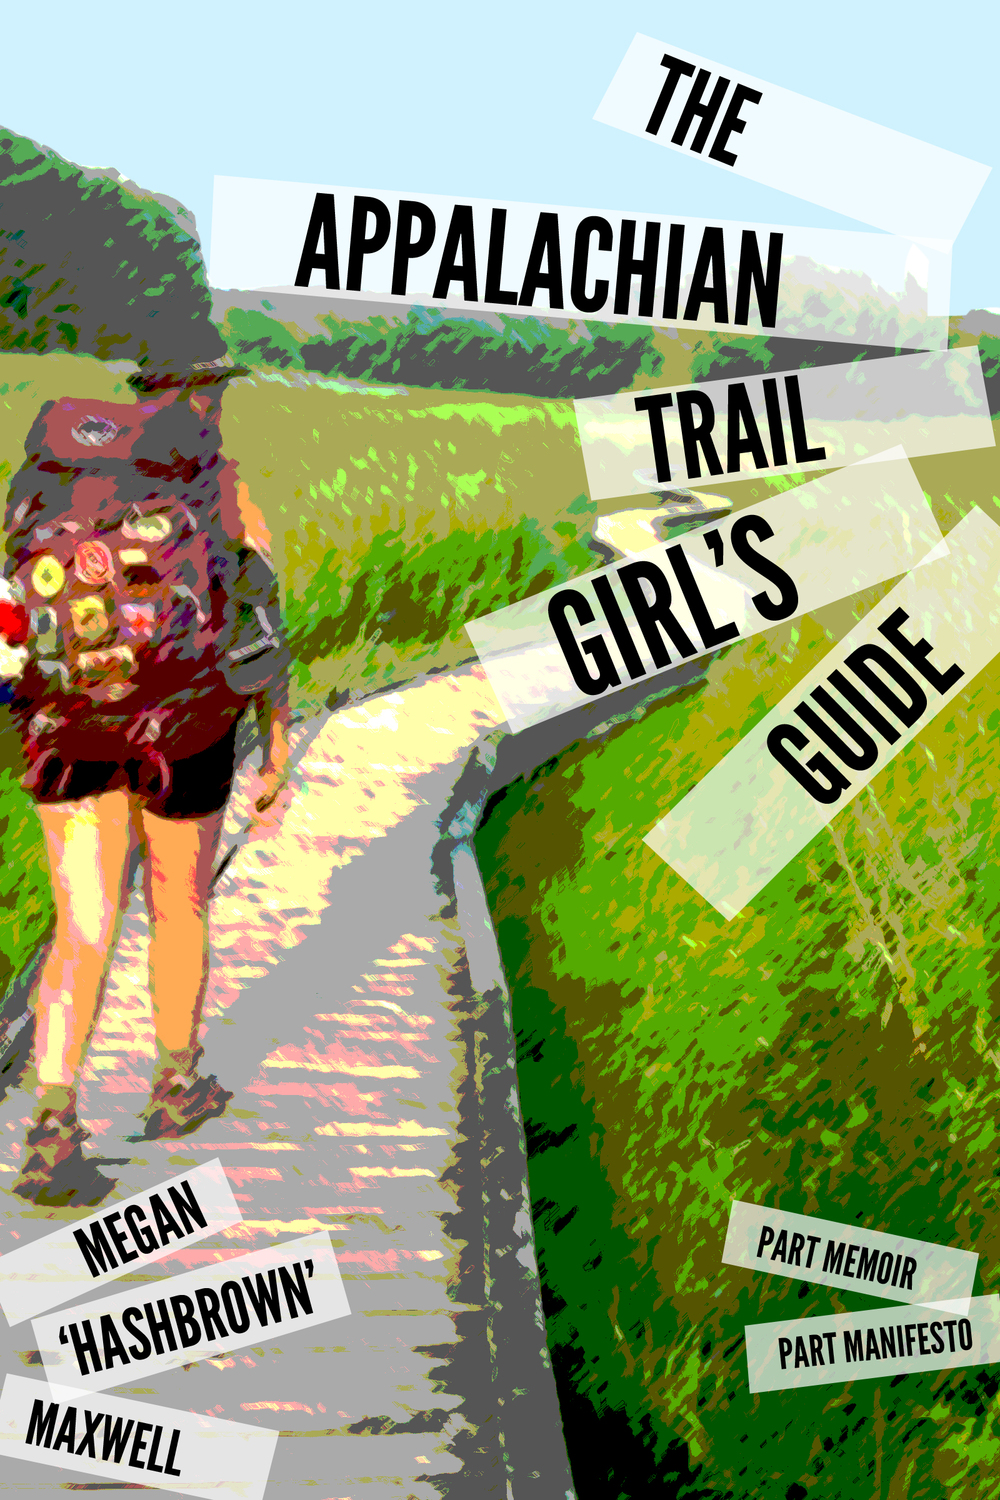 Appalachian Trail Girl